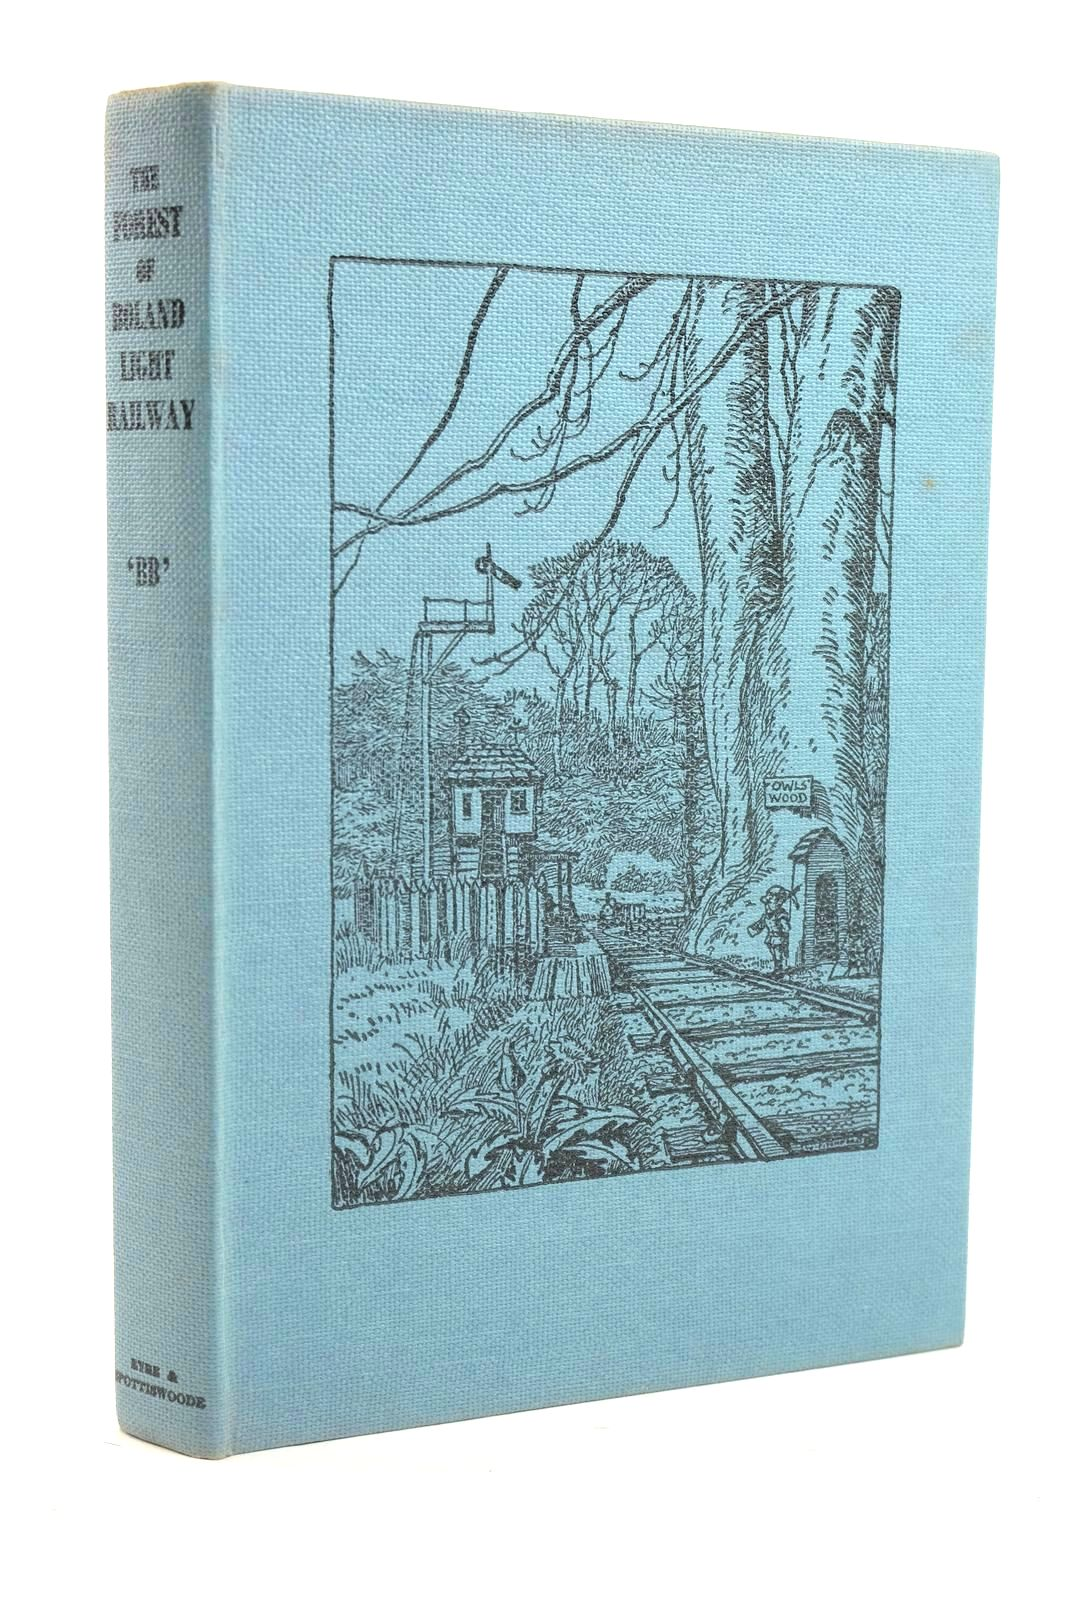 Photo of THE FOREST OF BOLAND LIGHT RAILWAY written by BB,  illustrated by BB,  published by Eyre & Spottiswoode (STOCK CODE: 1319926)  for sale by Stella & Rose's Books